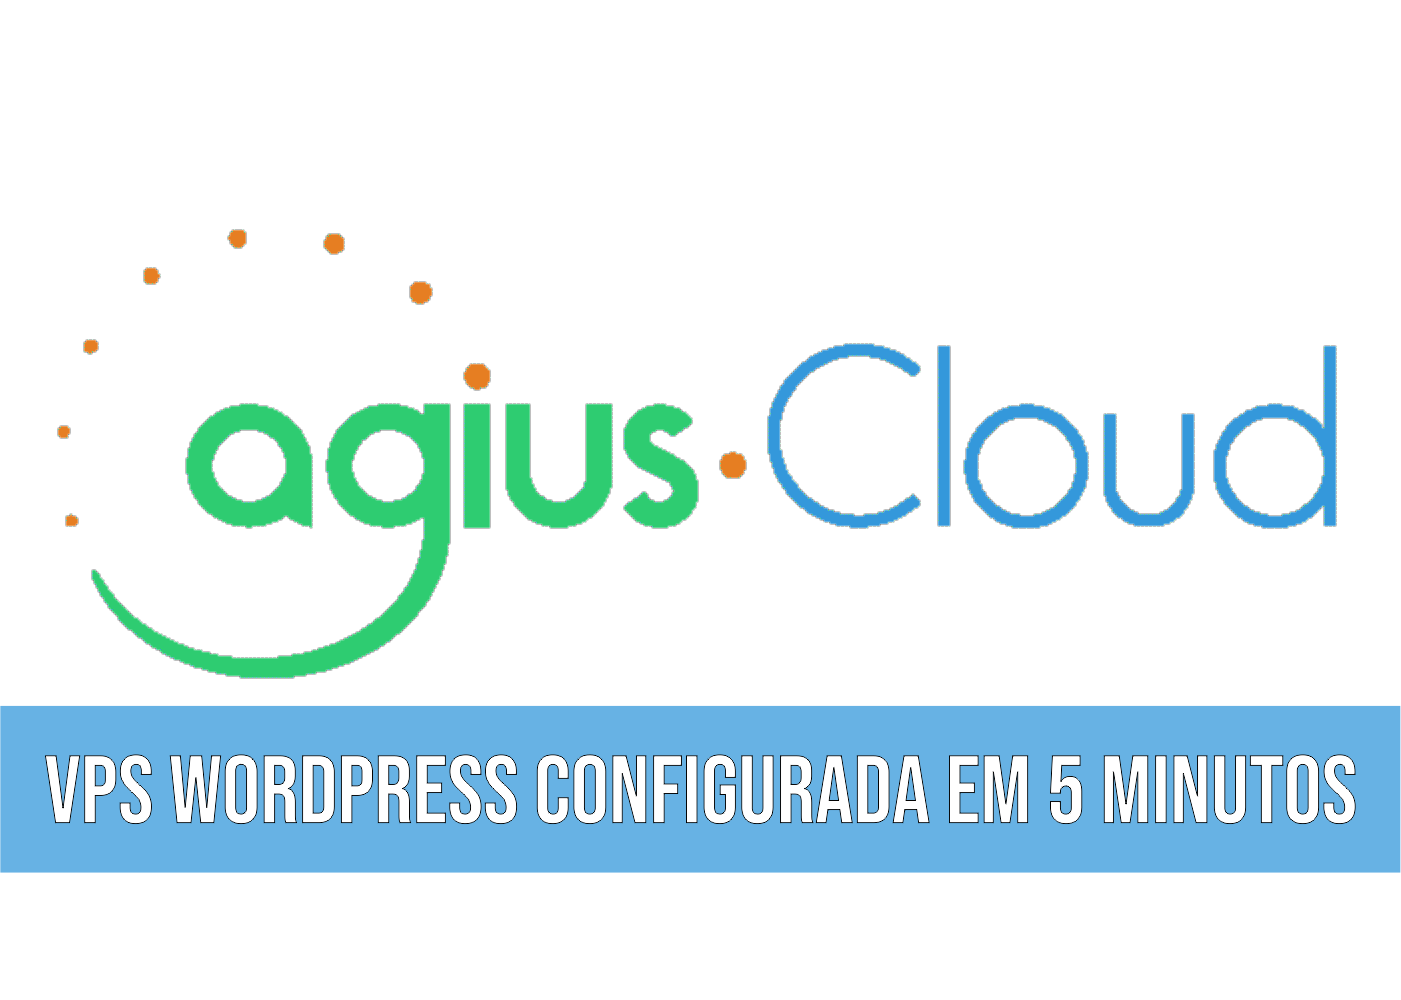 Agius Cloud VPS WordPress configurada em 5 minutos